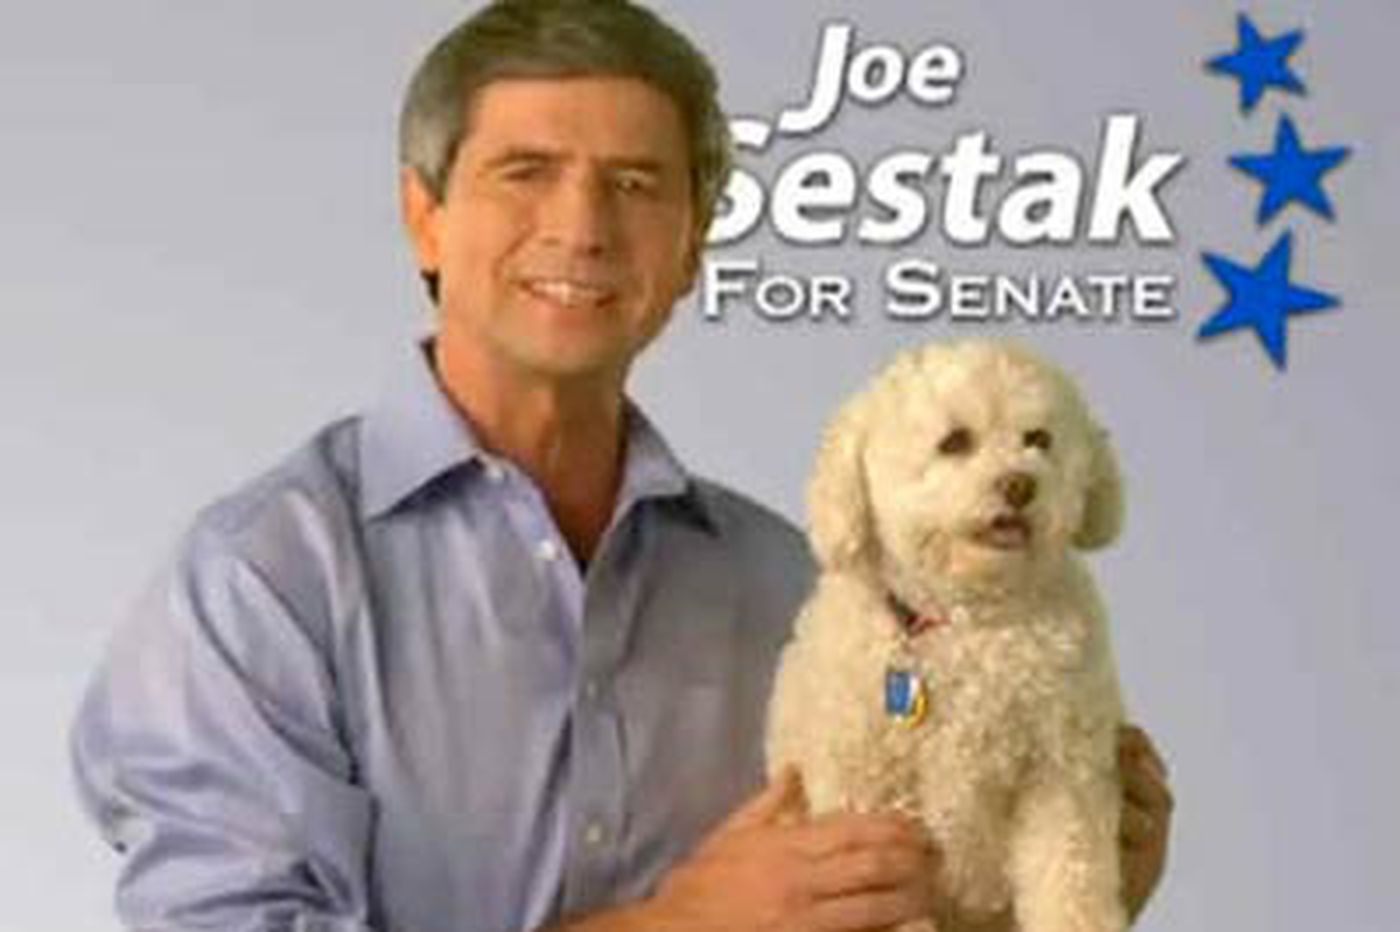 Michael Smerconish: The ad that may bag it for Sestak